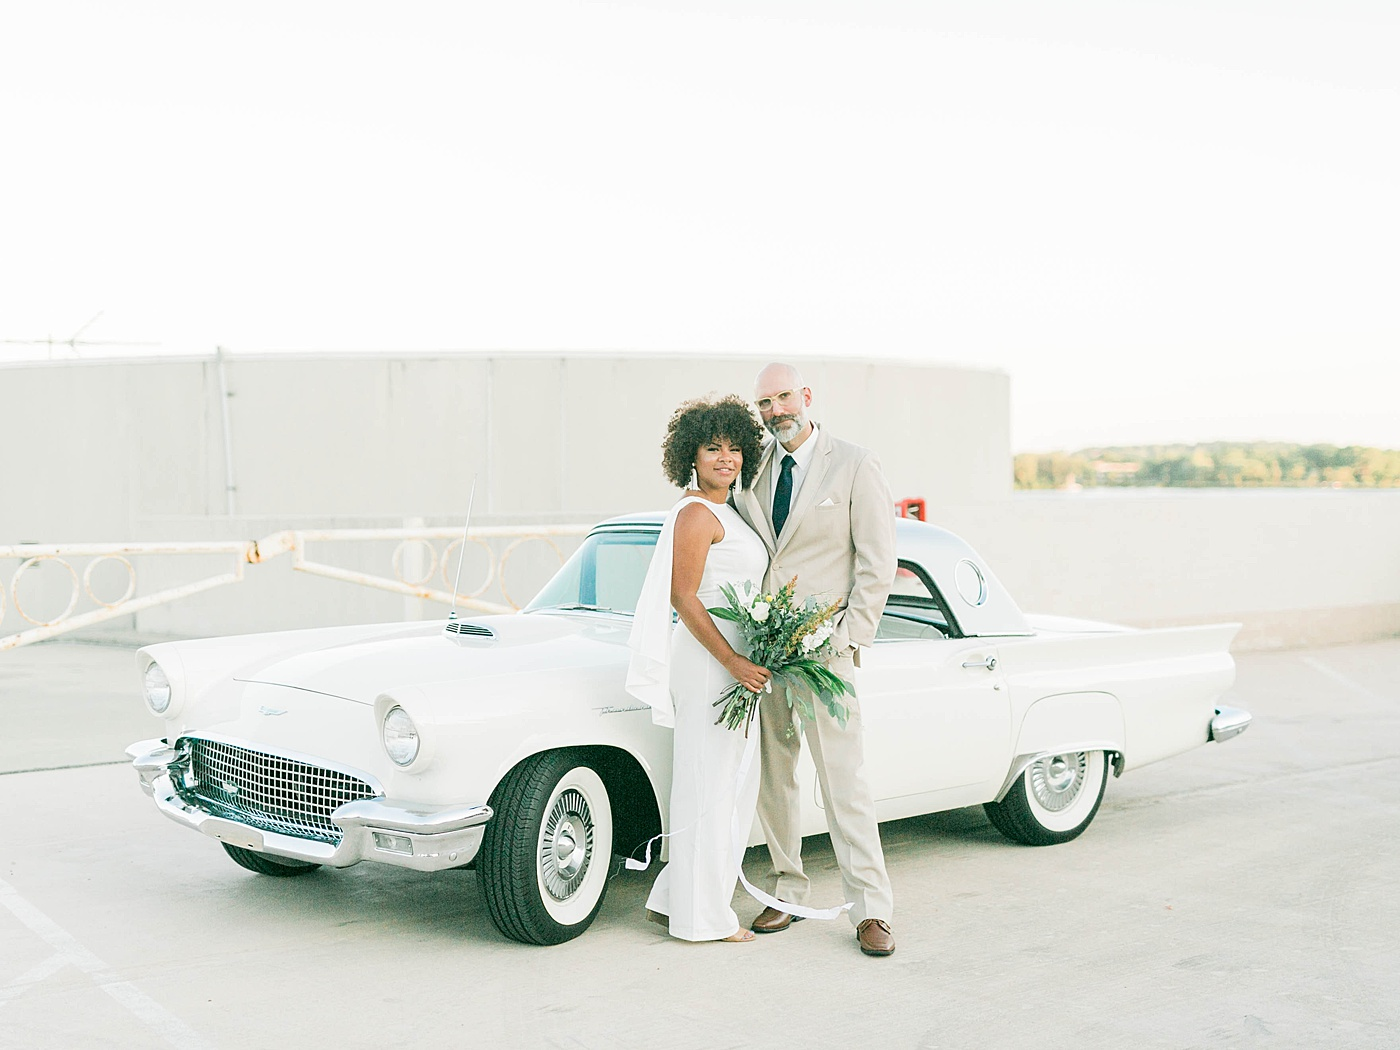 monona terrace wedding miriam bulcher photography